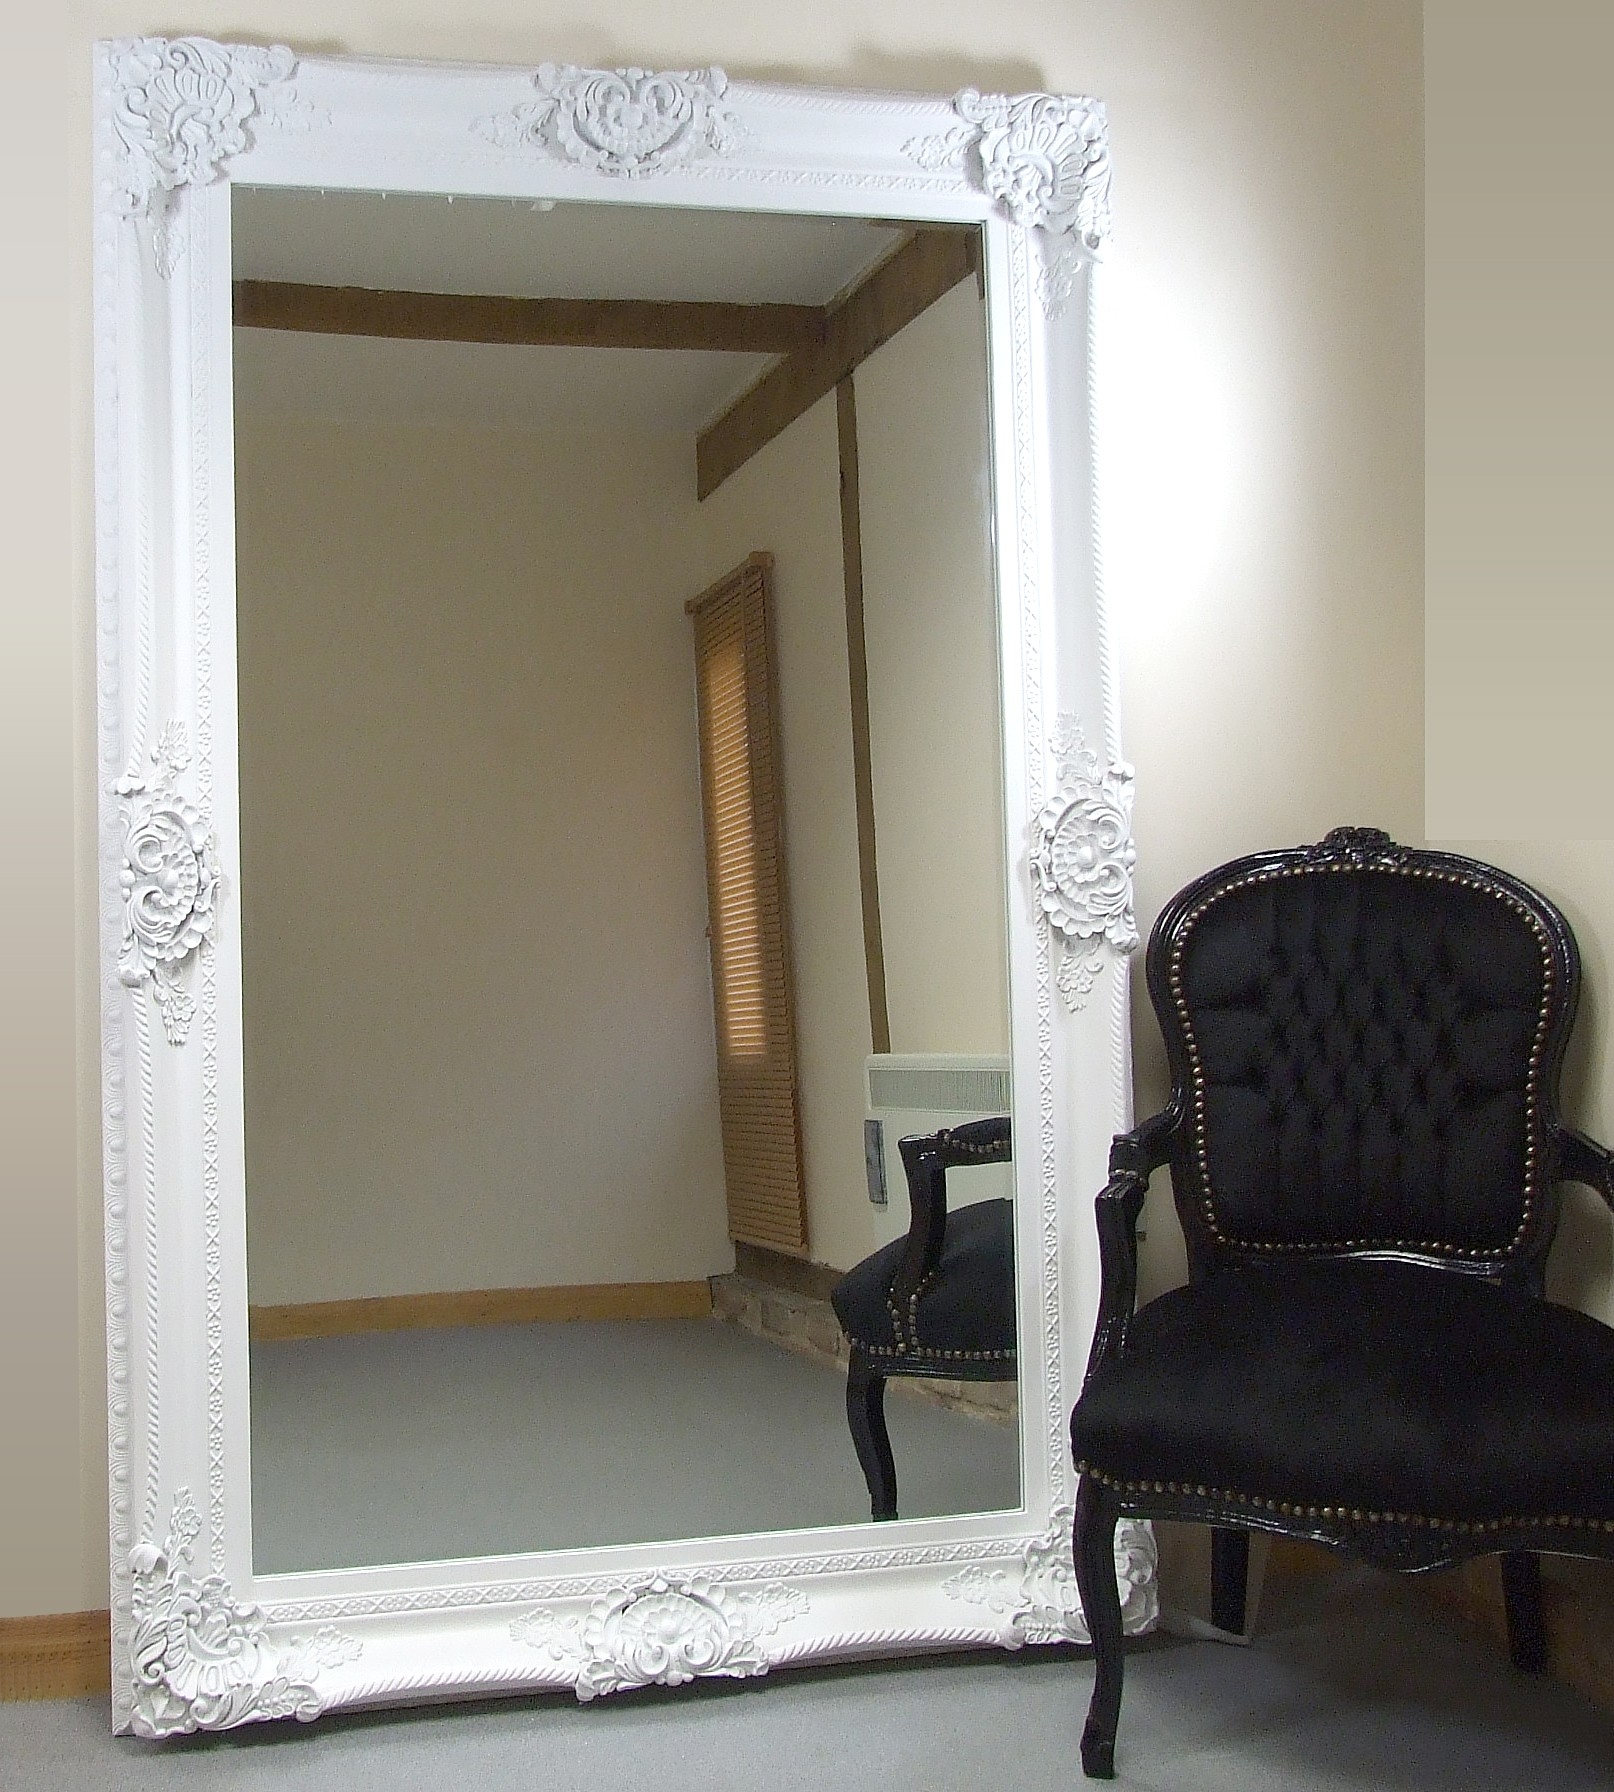 Seville Ornate Extra Large French Full Length Wall Leaner Mirror For French Full Length Mirror (View 10 of 15)